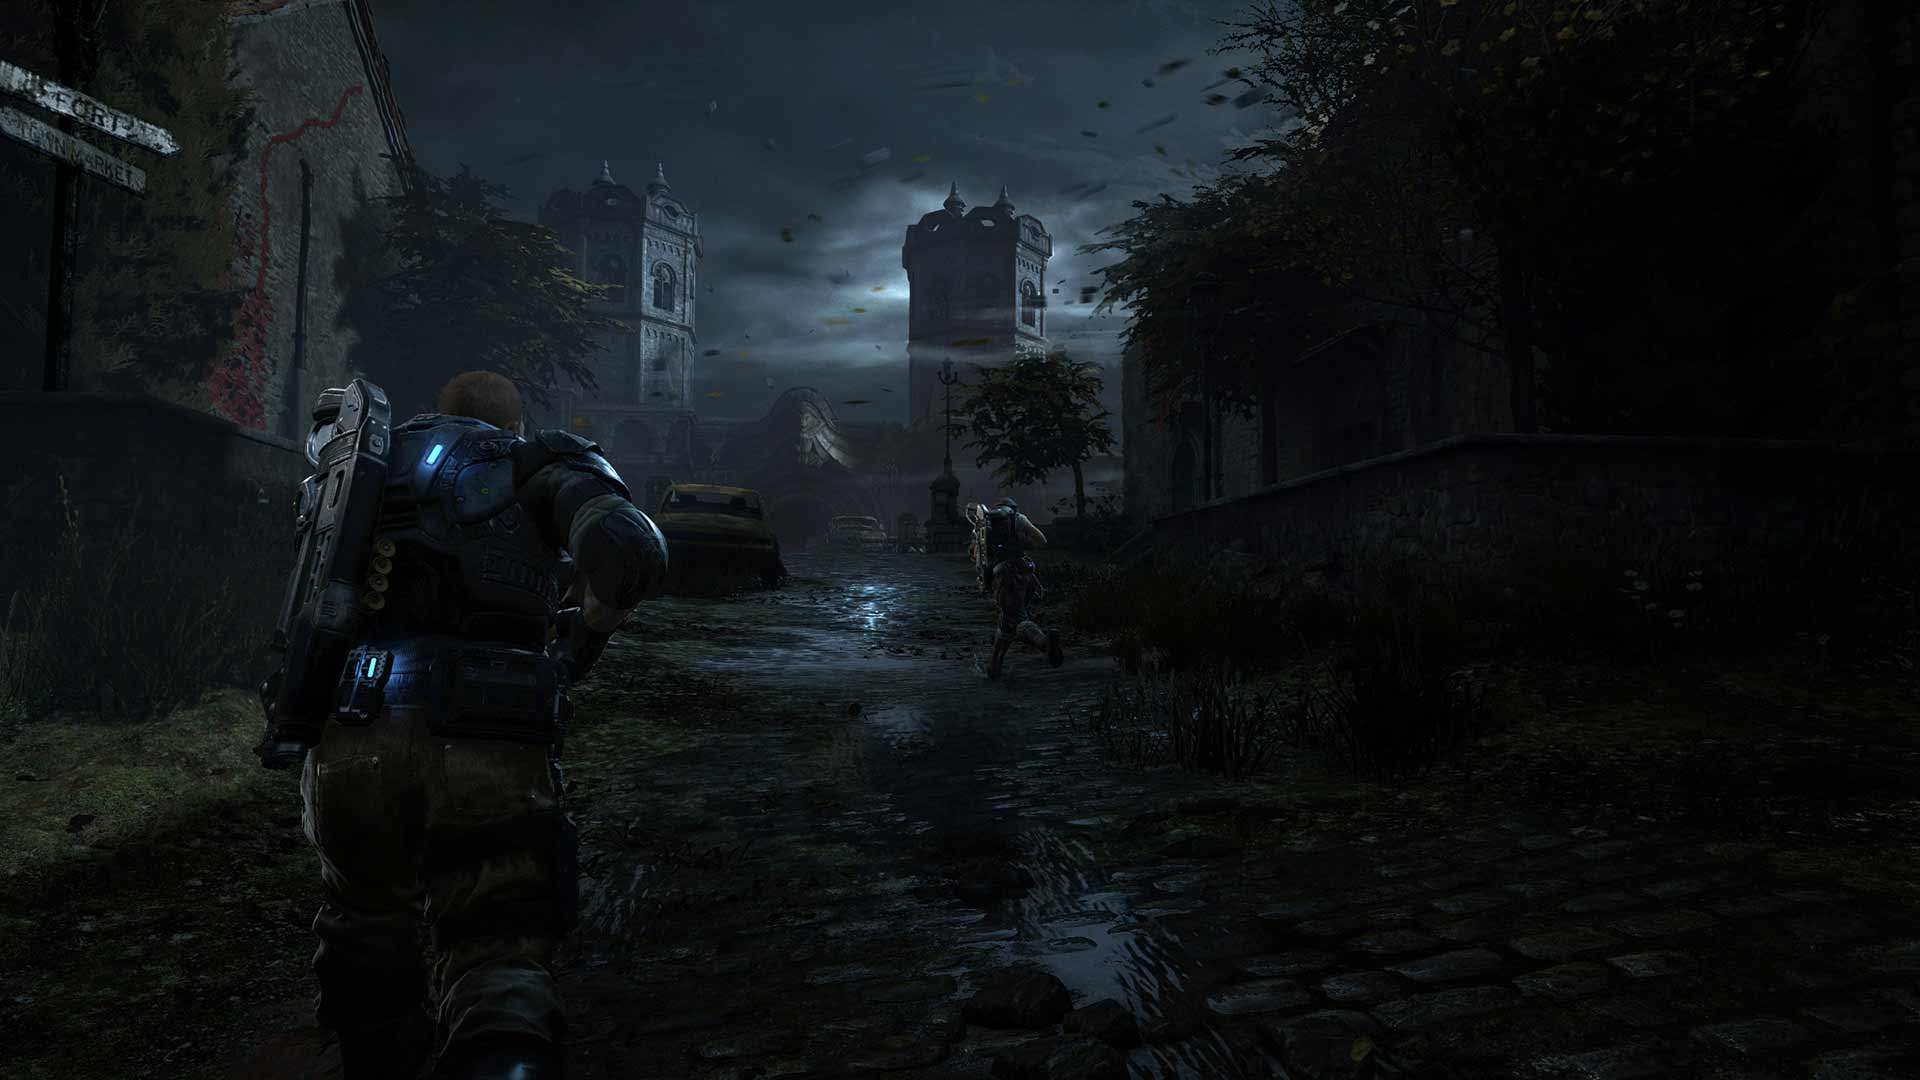 Gears Of War 4 and Ultimate Edition Bridge Screenshot